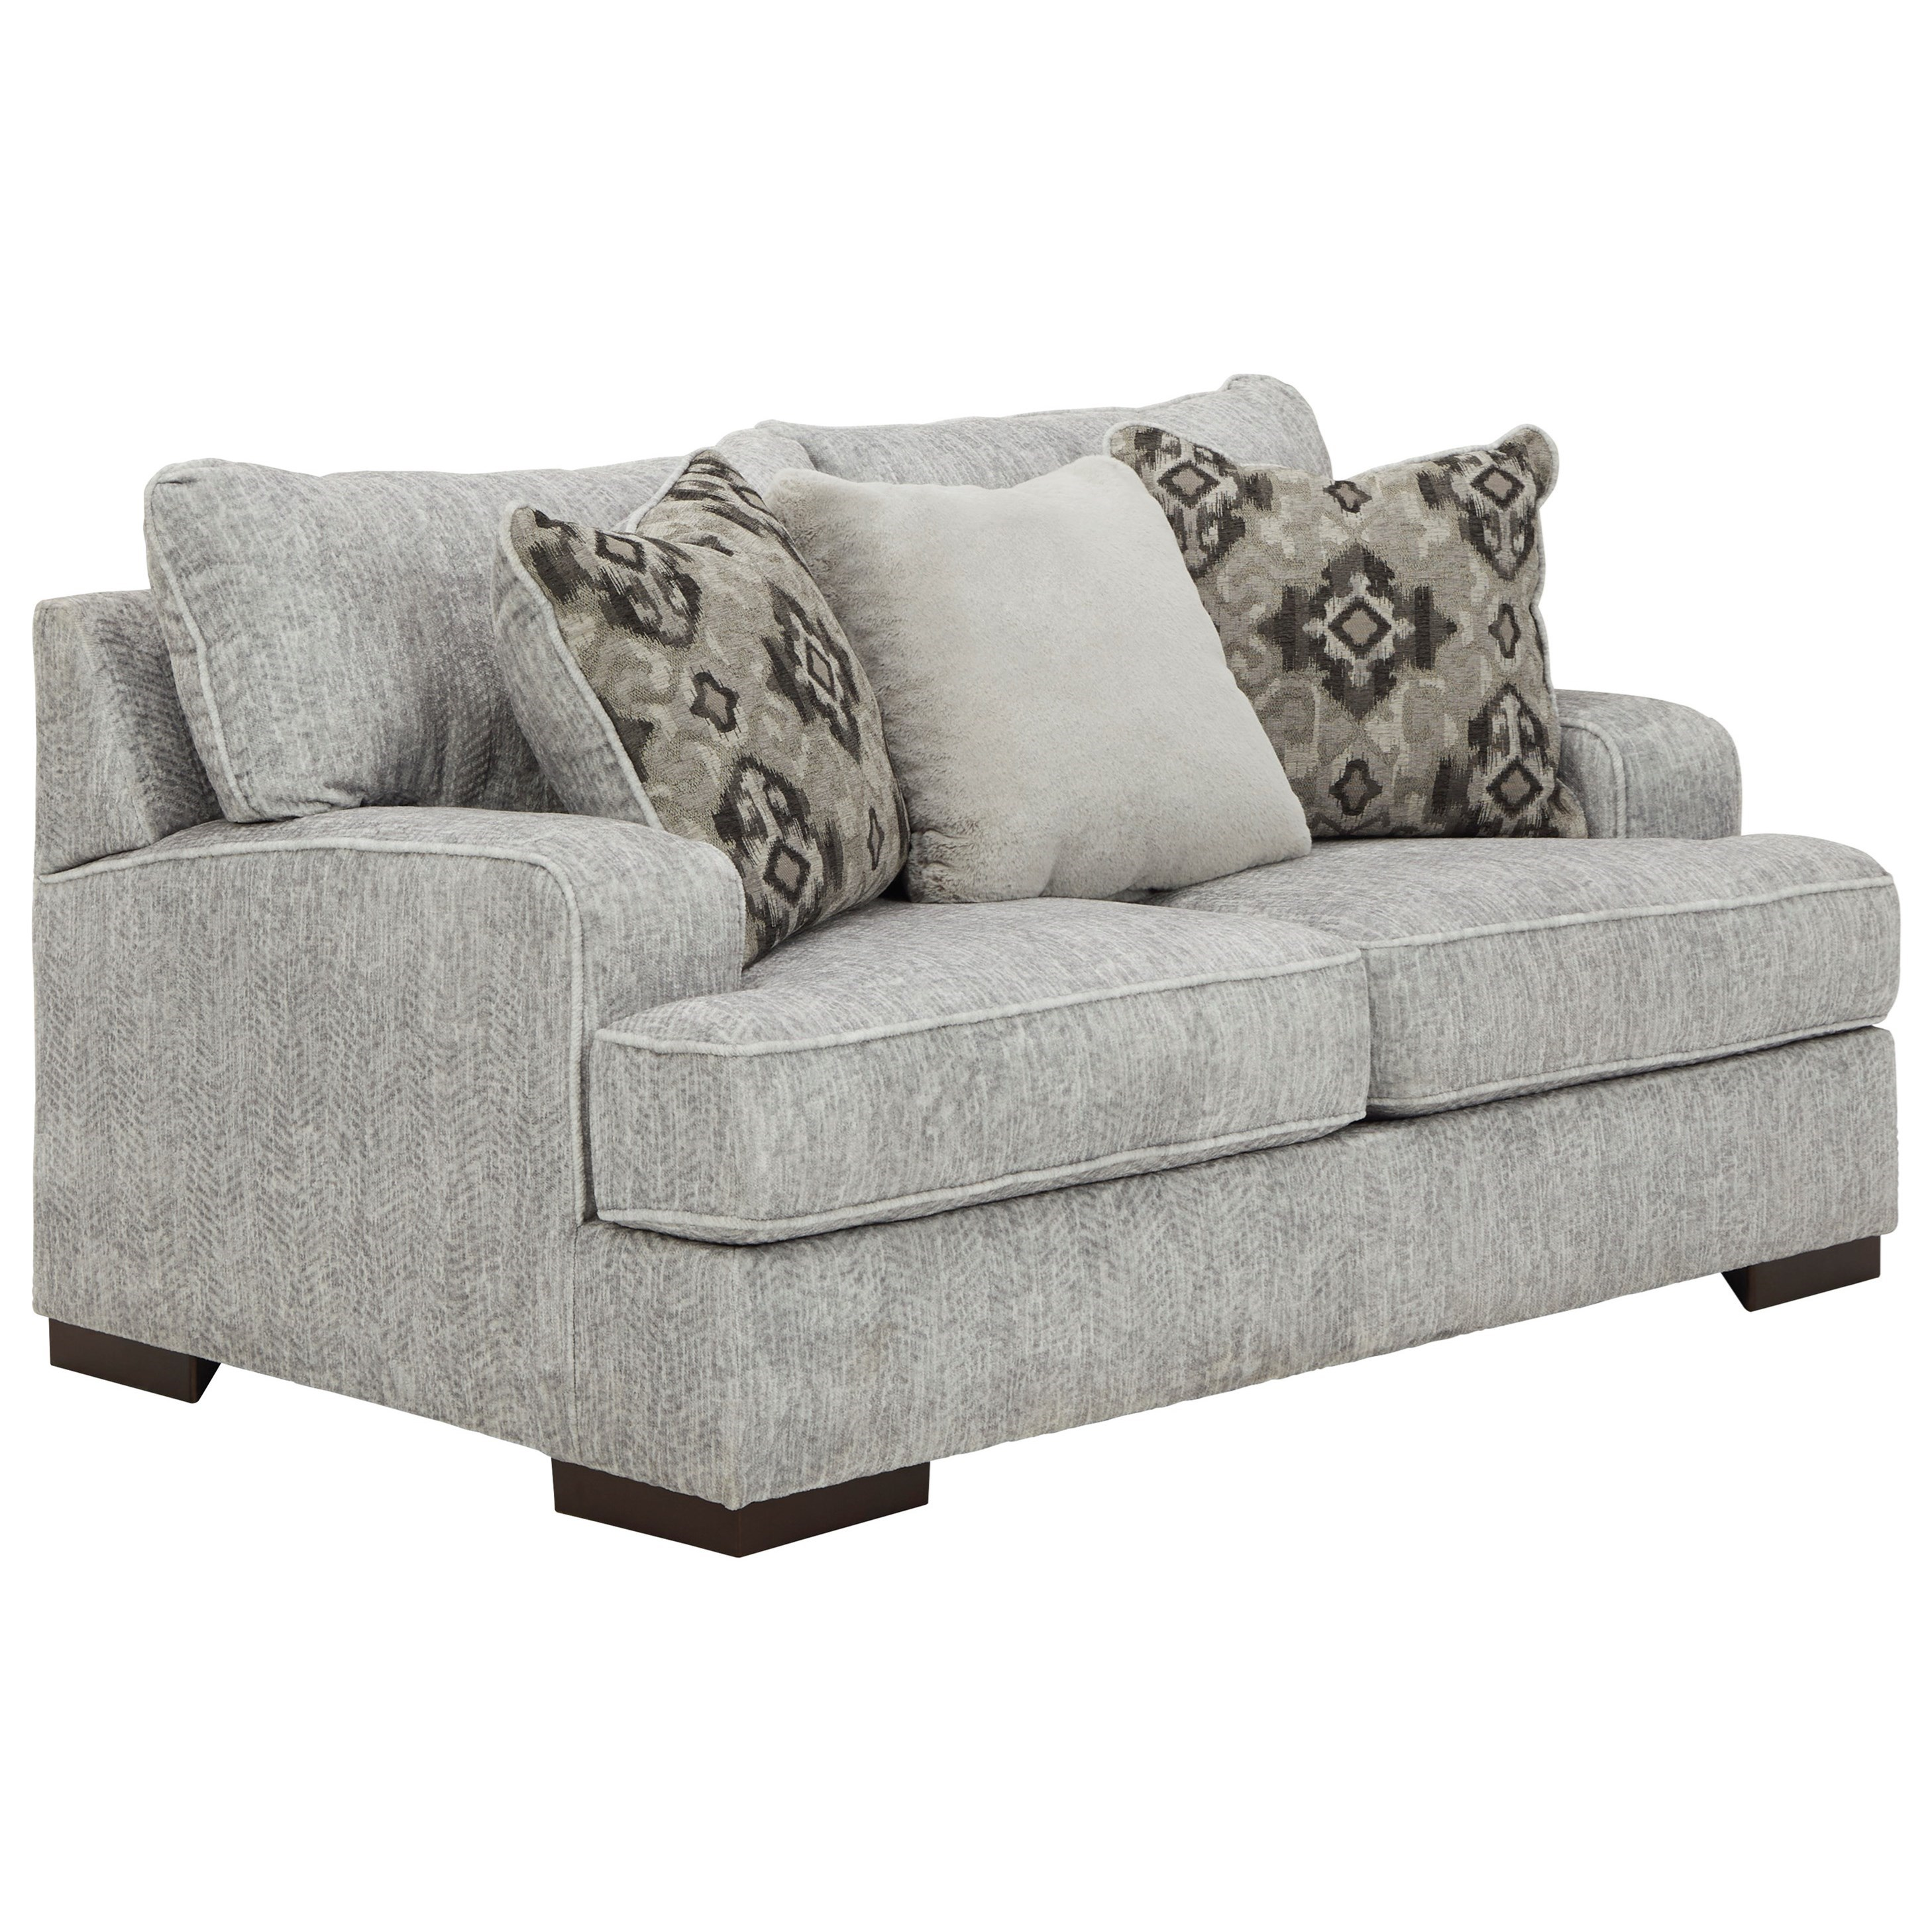 Benchcraft Mercado 8460435 Contemporary Loveseat Gill Brothers Furniture Loveseats